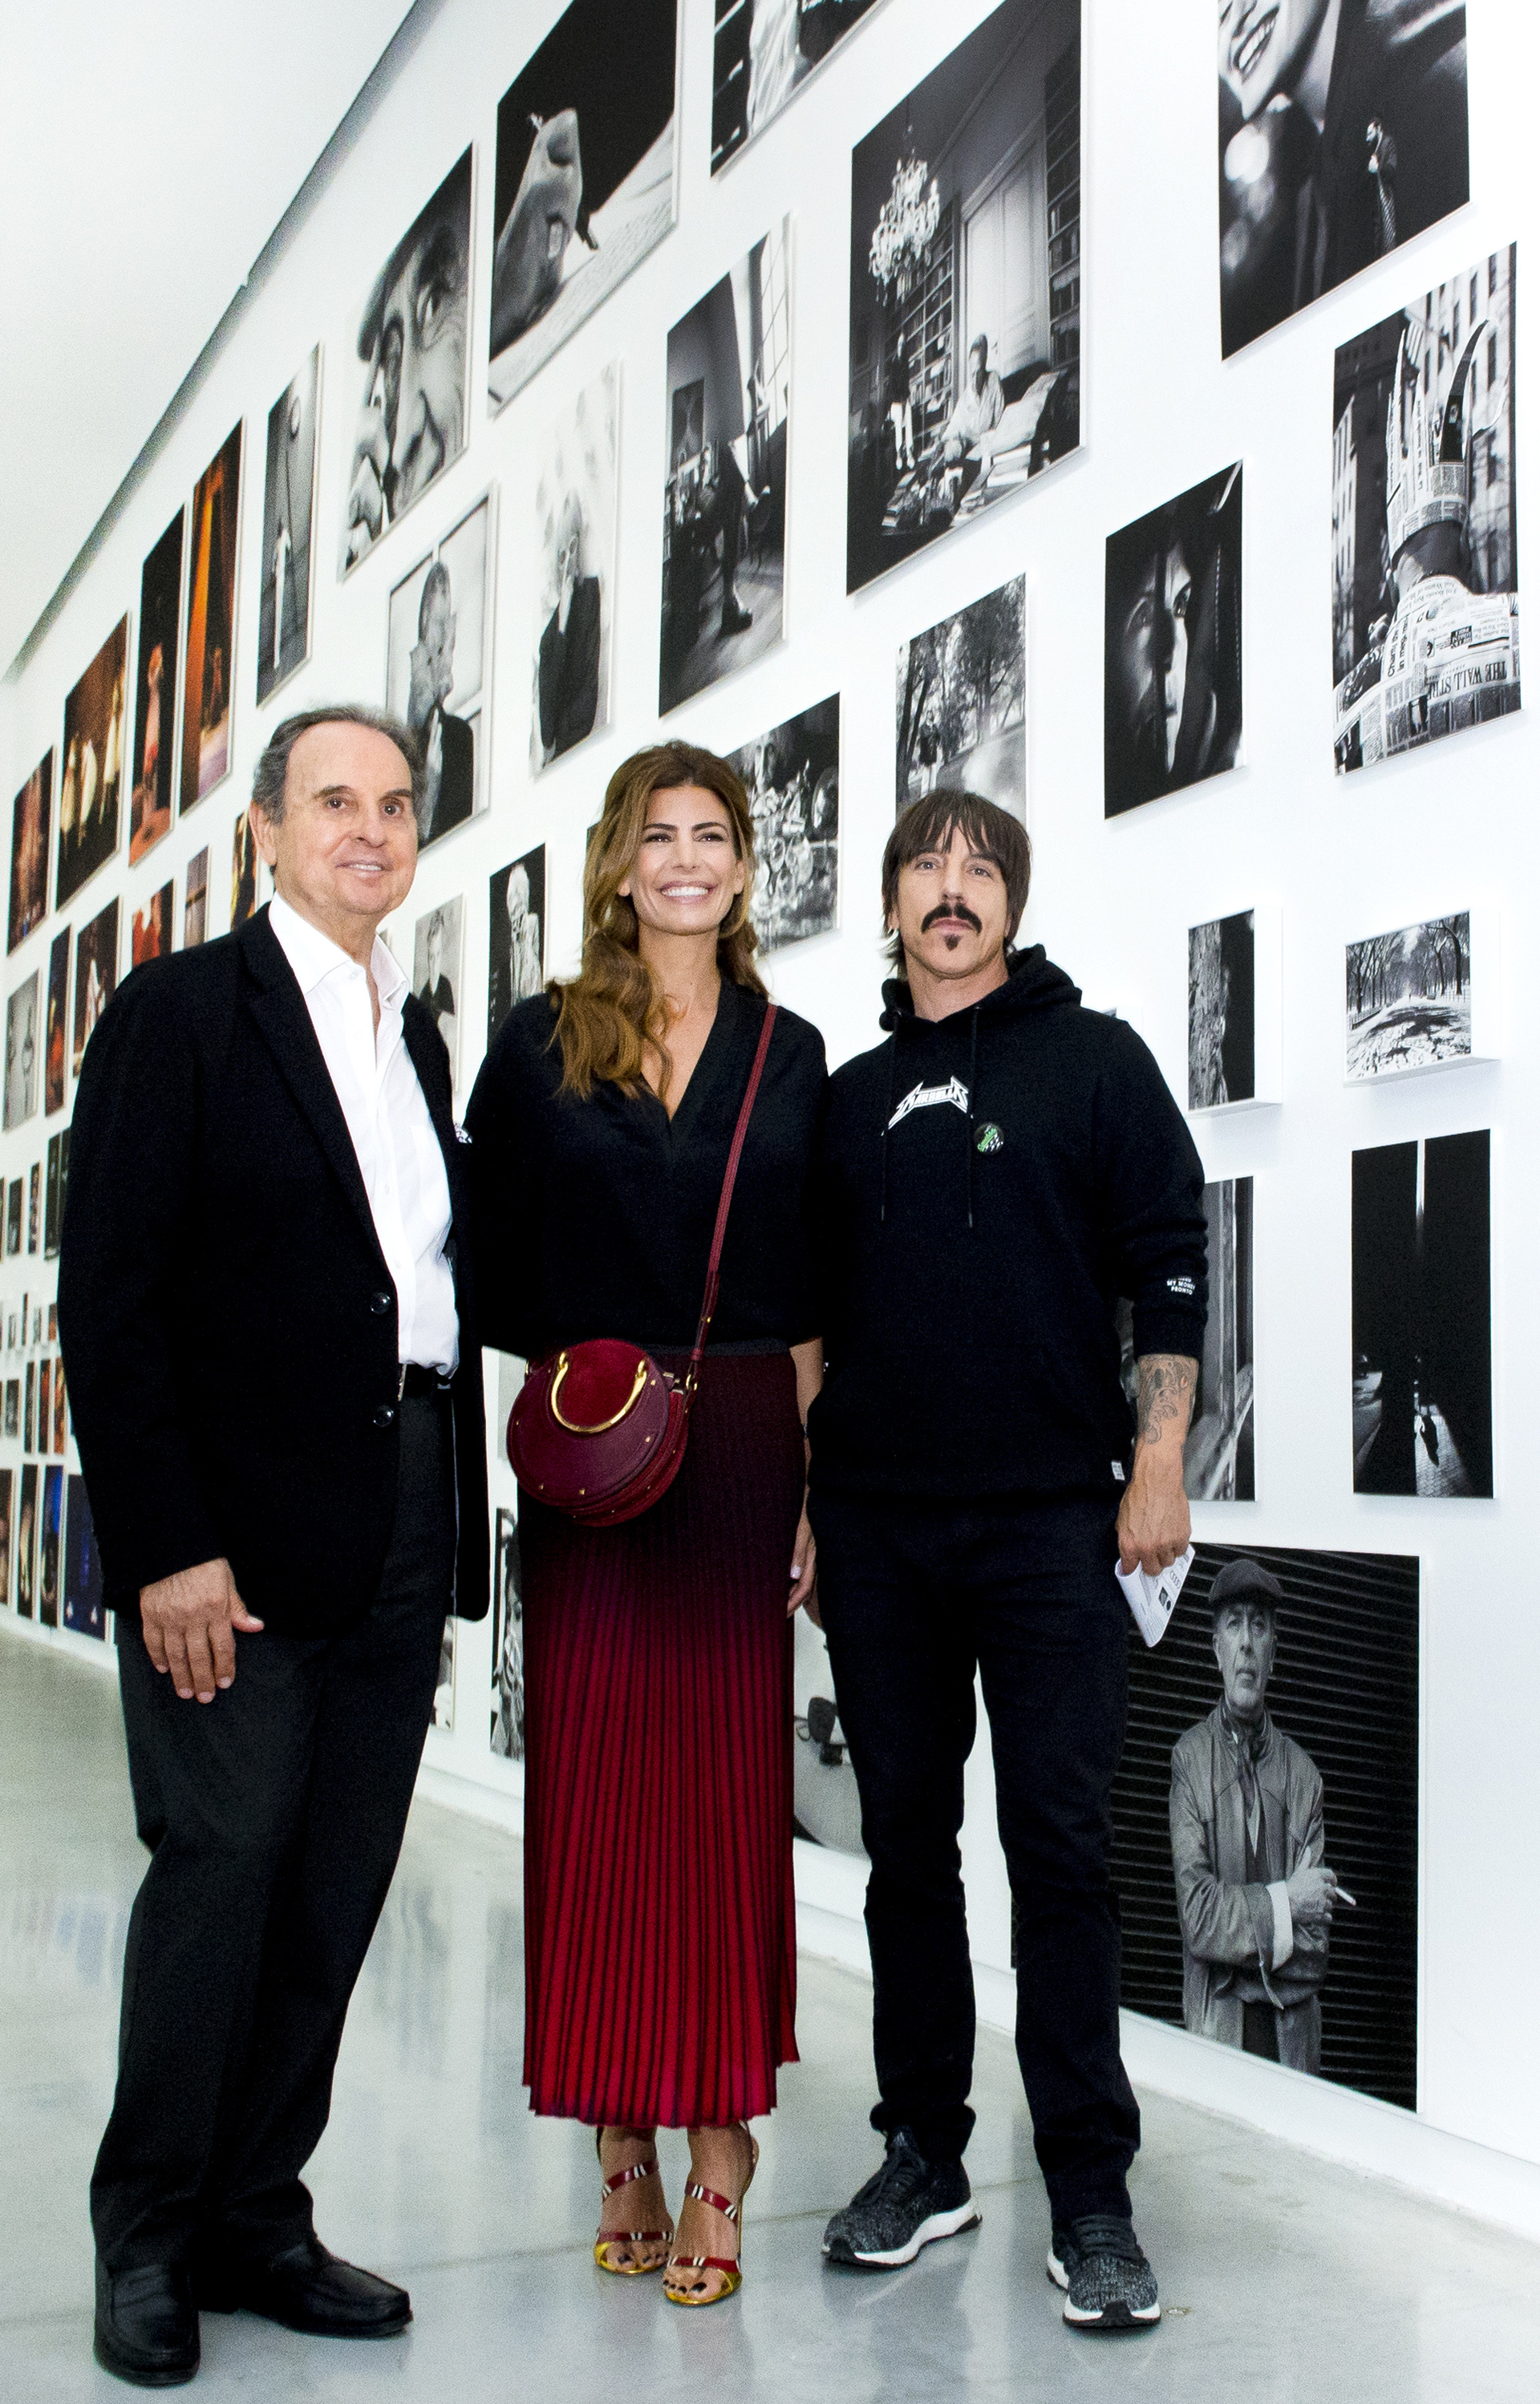 Aldo Sessa, Juliana Awada y Anthony Kiedis